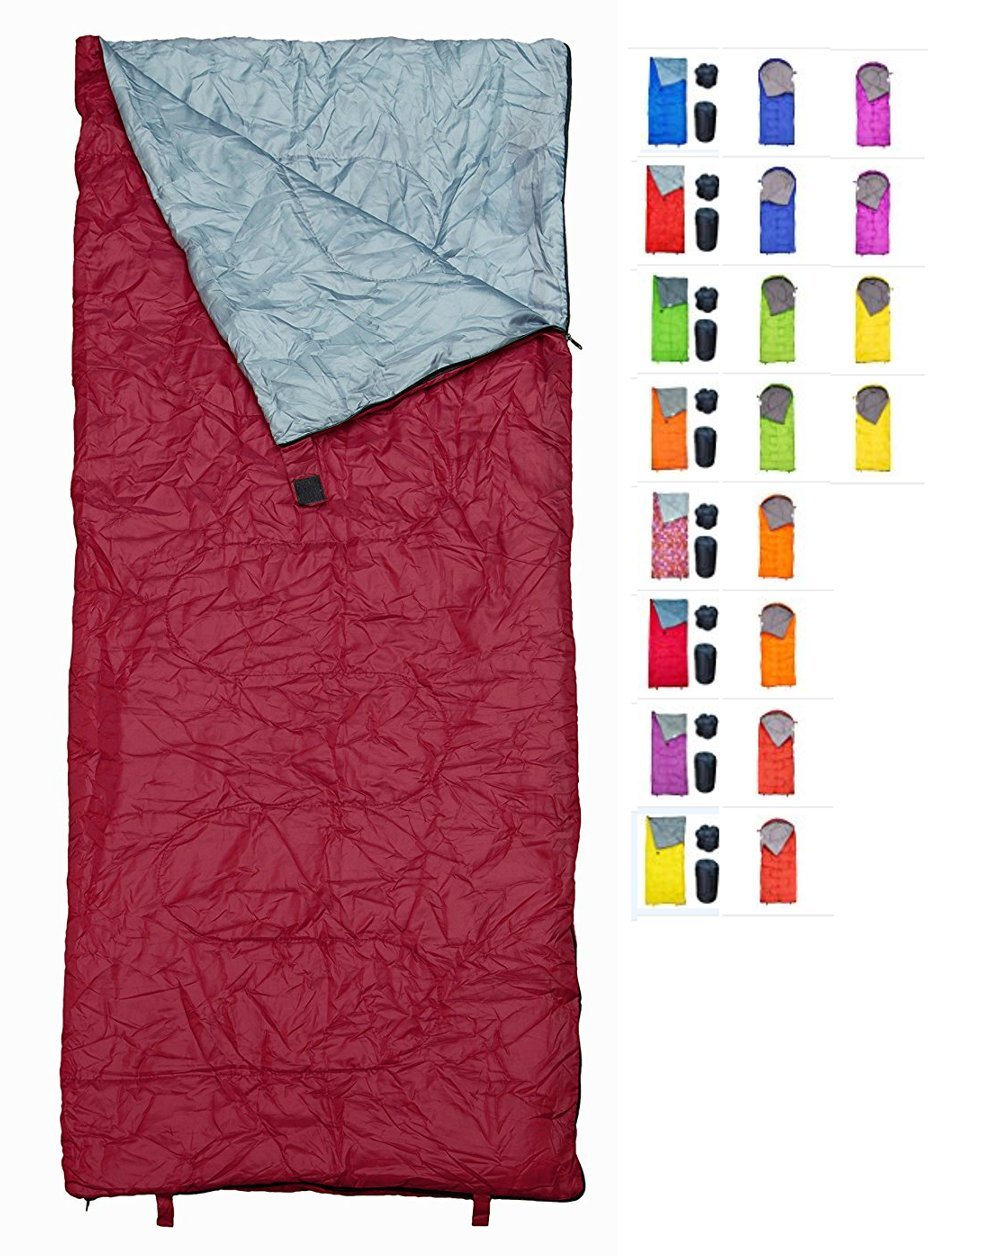 REVALCAMP Sleeping Bag Bordeaux - Indoor & Outdoor Use. Great for Kids, Boys, Girls, Teens & Adults. Ultralight and Compact Bags are Perfect for Hiking, Backpacking & Camping